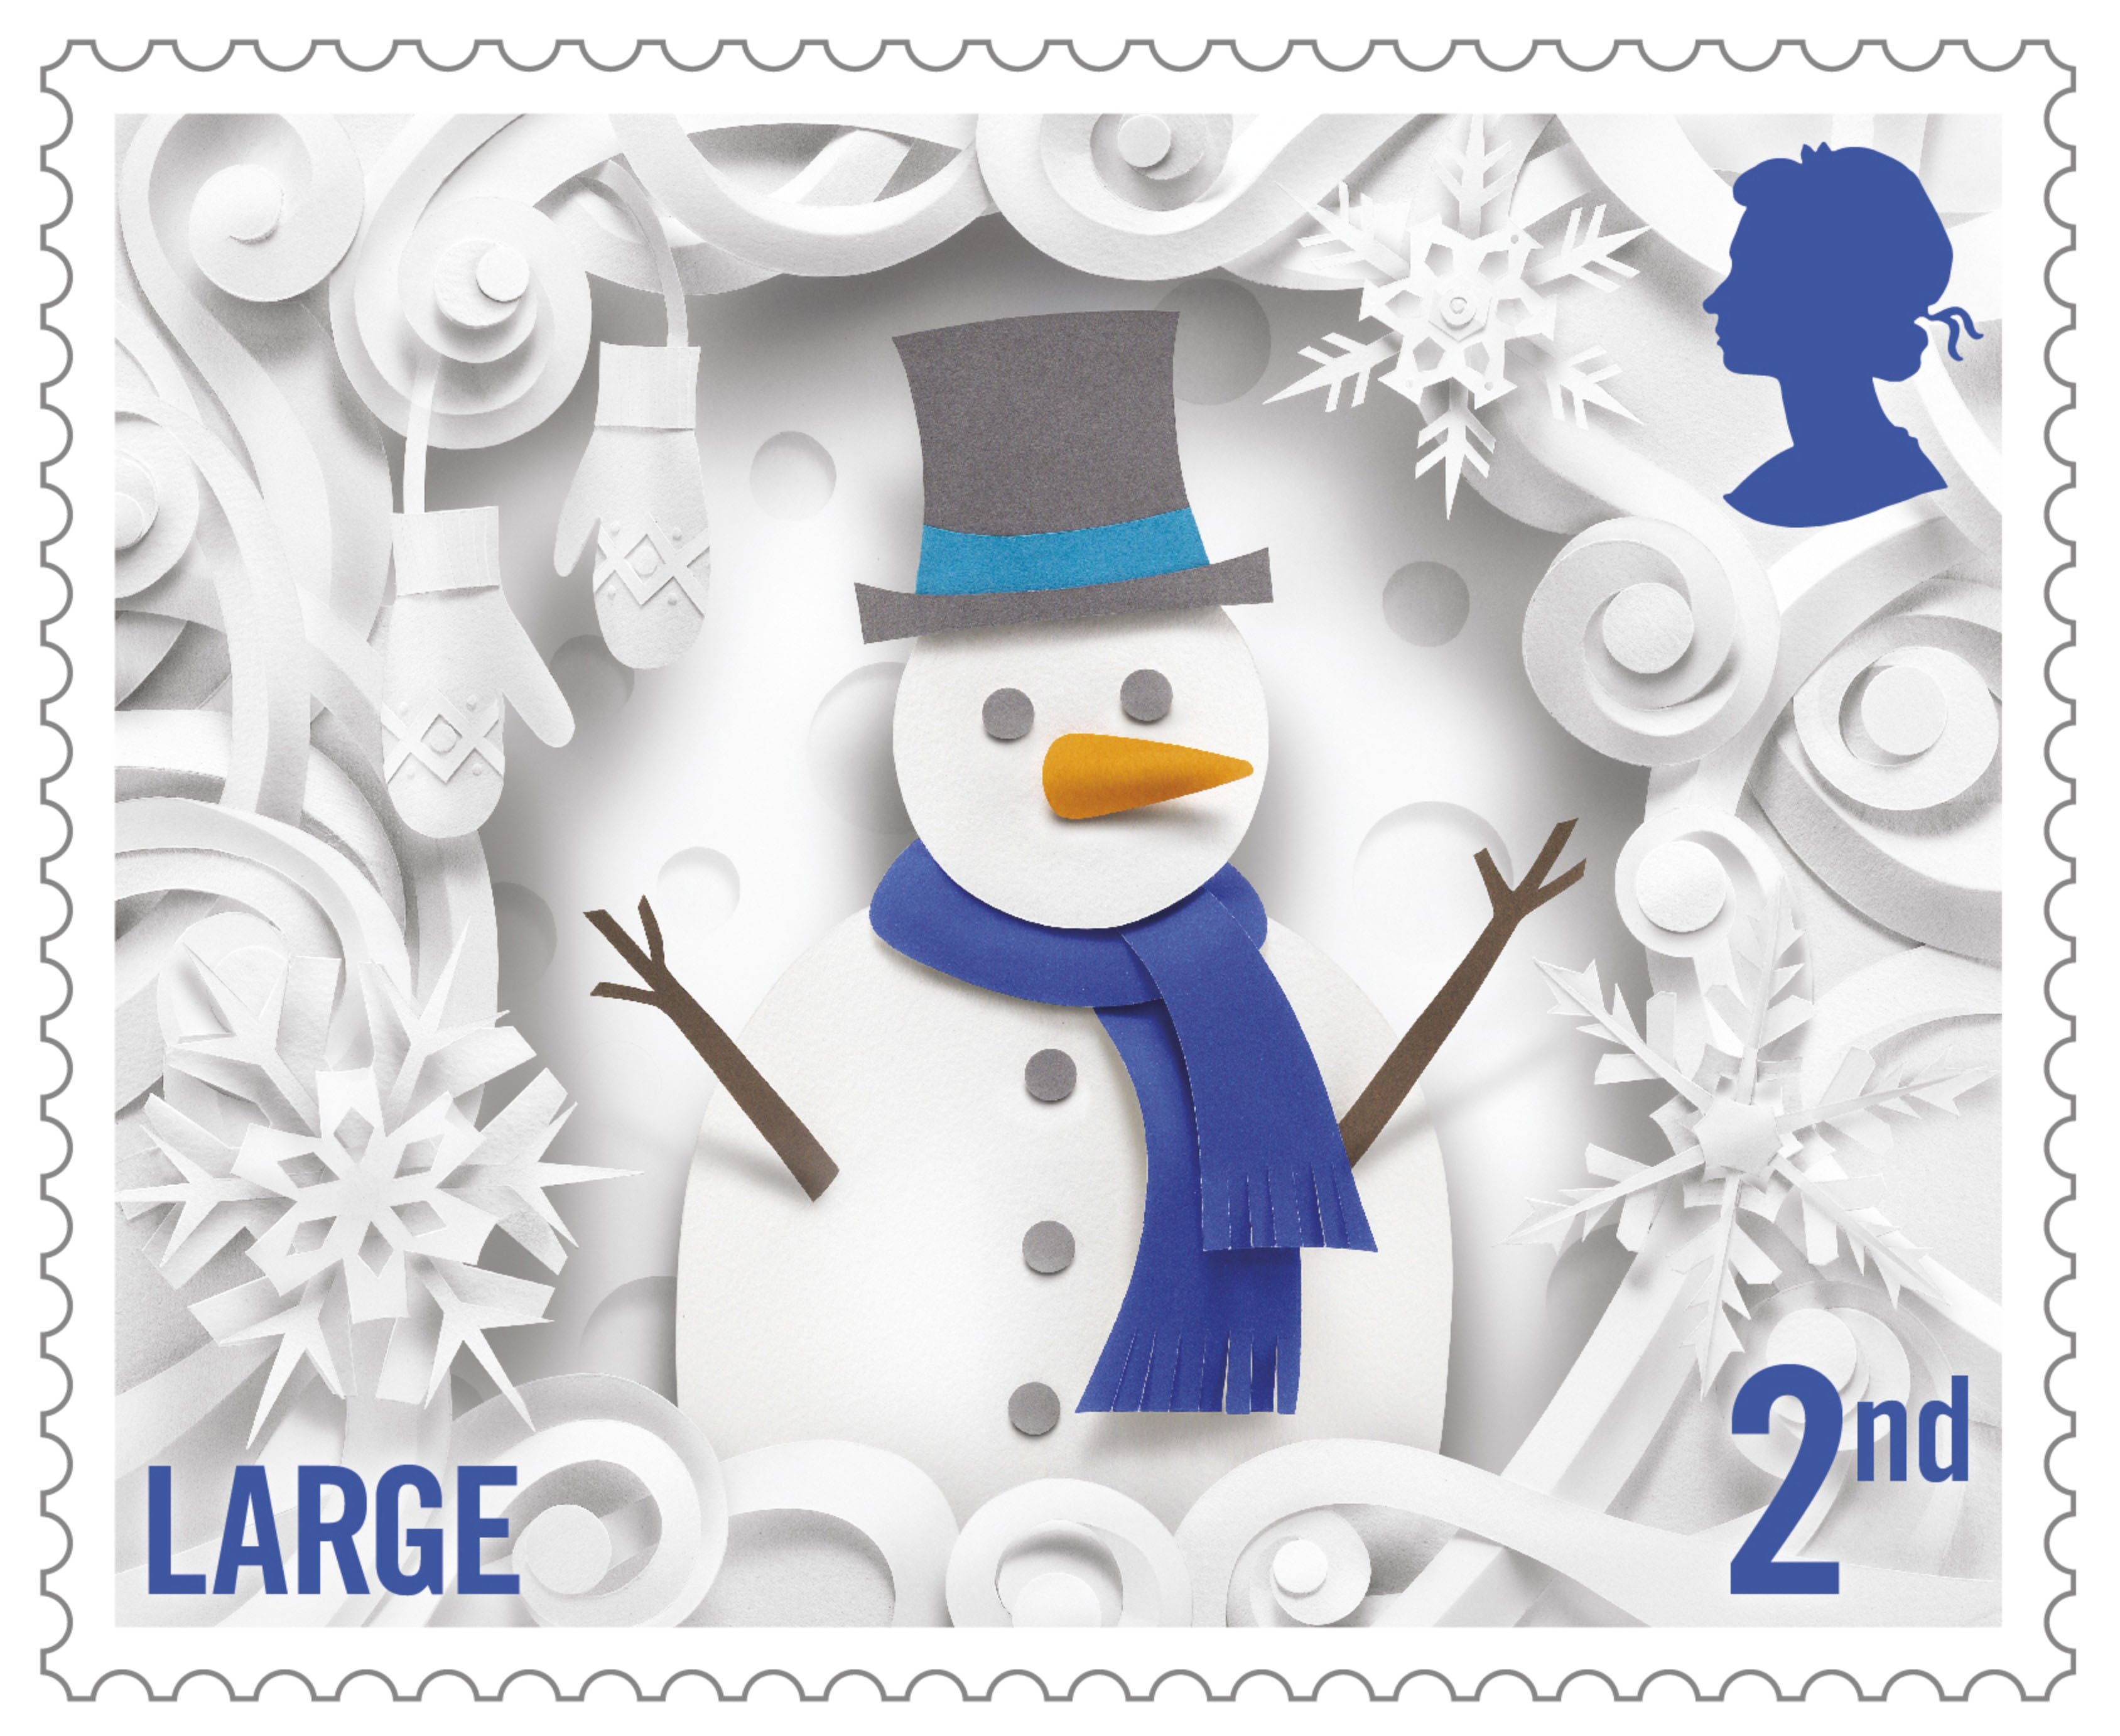 Large image of the second class Christmas stamp with a paper cutting of a snowman surrounded by snowflakes.